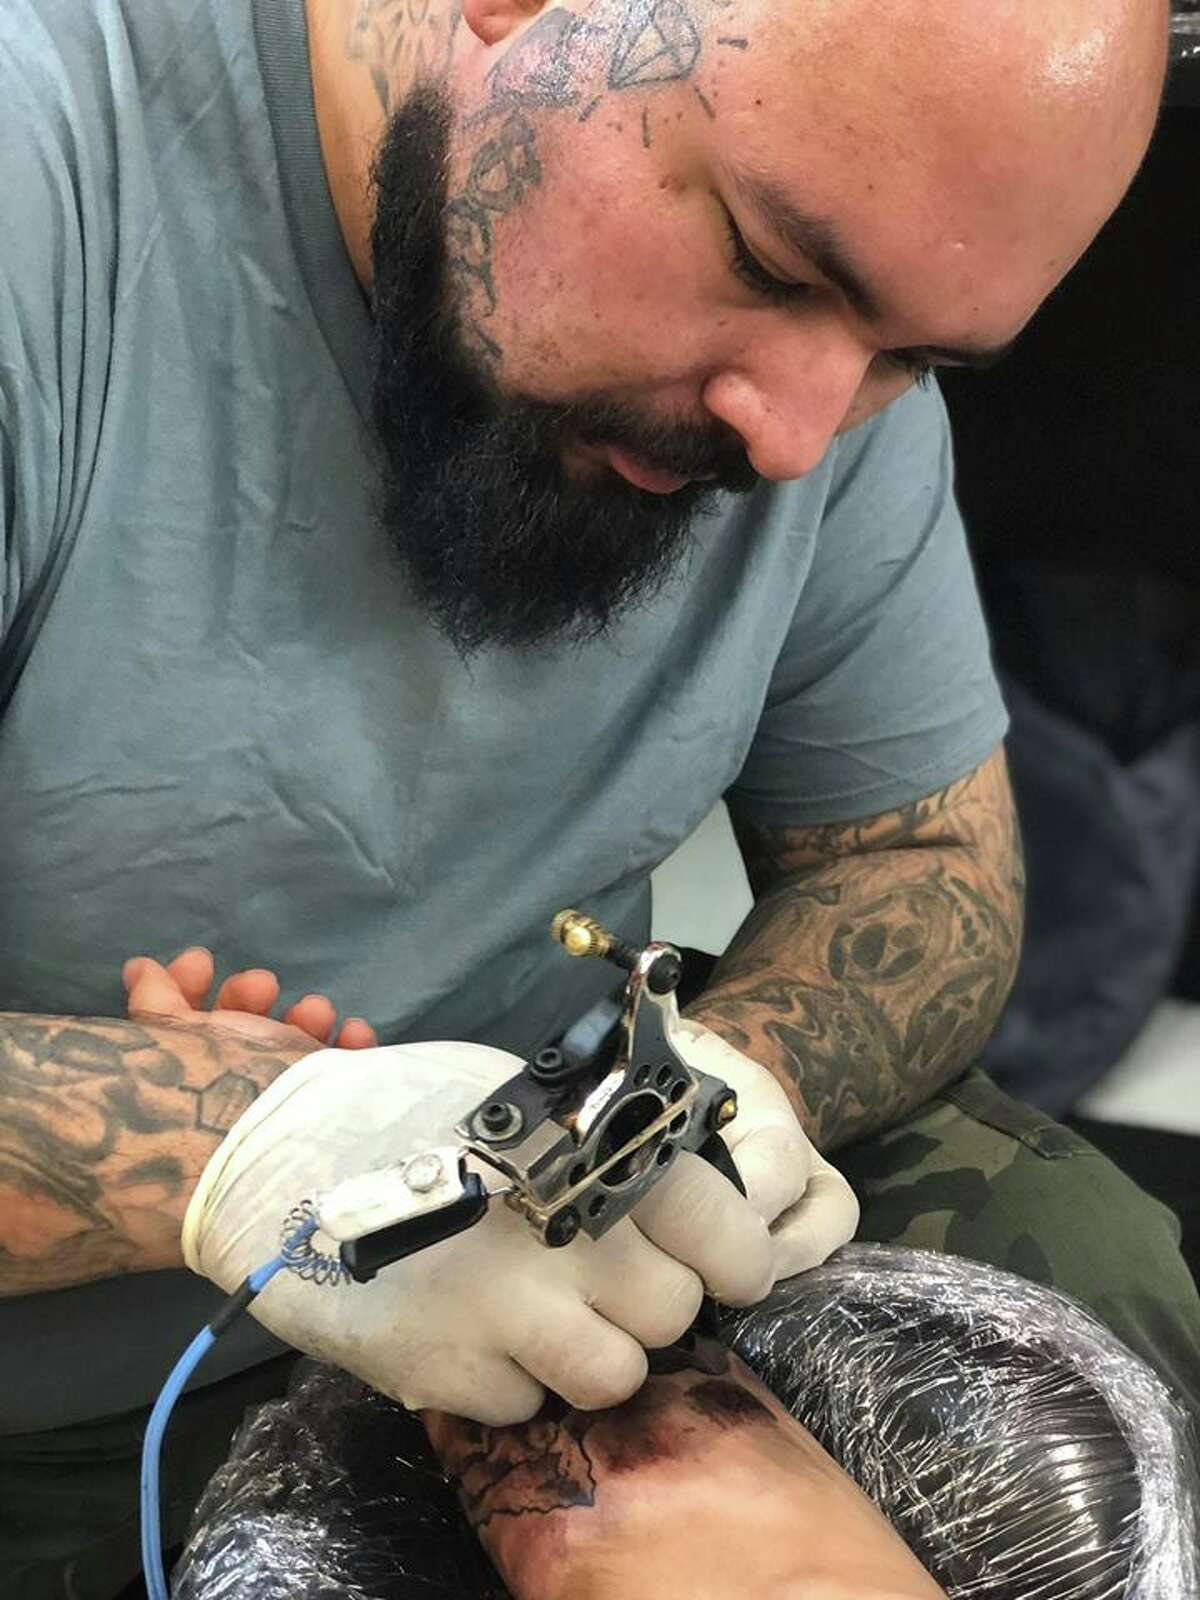 Xavier Avila, 29, was fatally shot Monday during an argument at a West Side bar. He was a tattoo artist for Nite Owl Tattoo Studio and the father of a 7-year-old daughter, Aalyah.